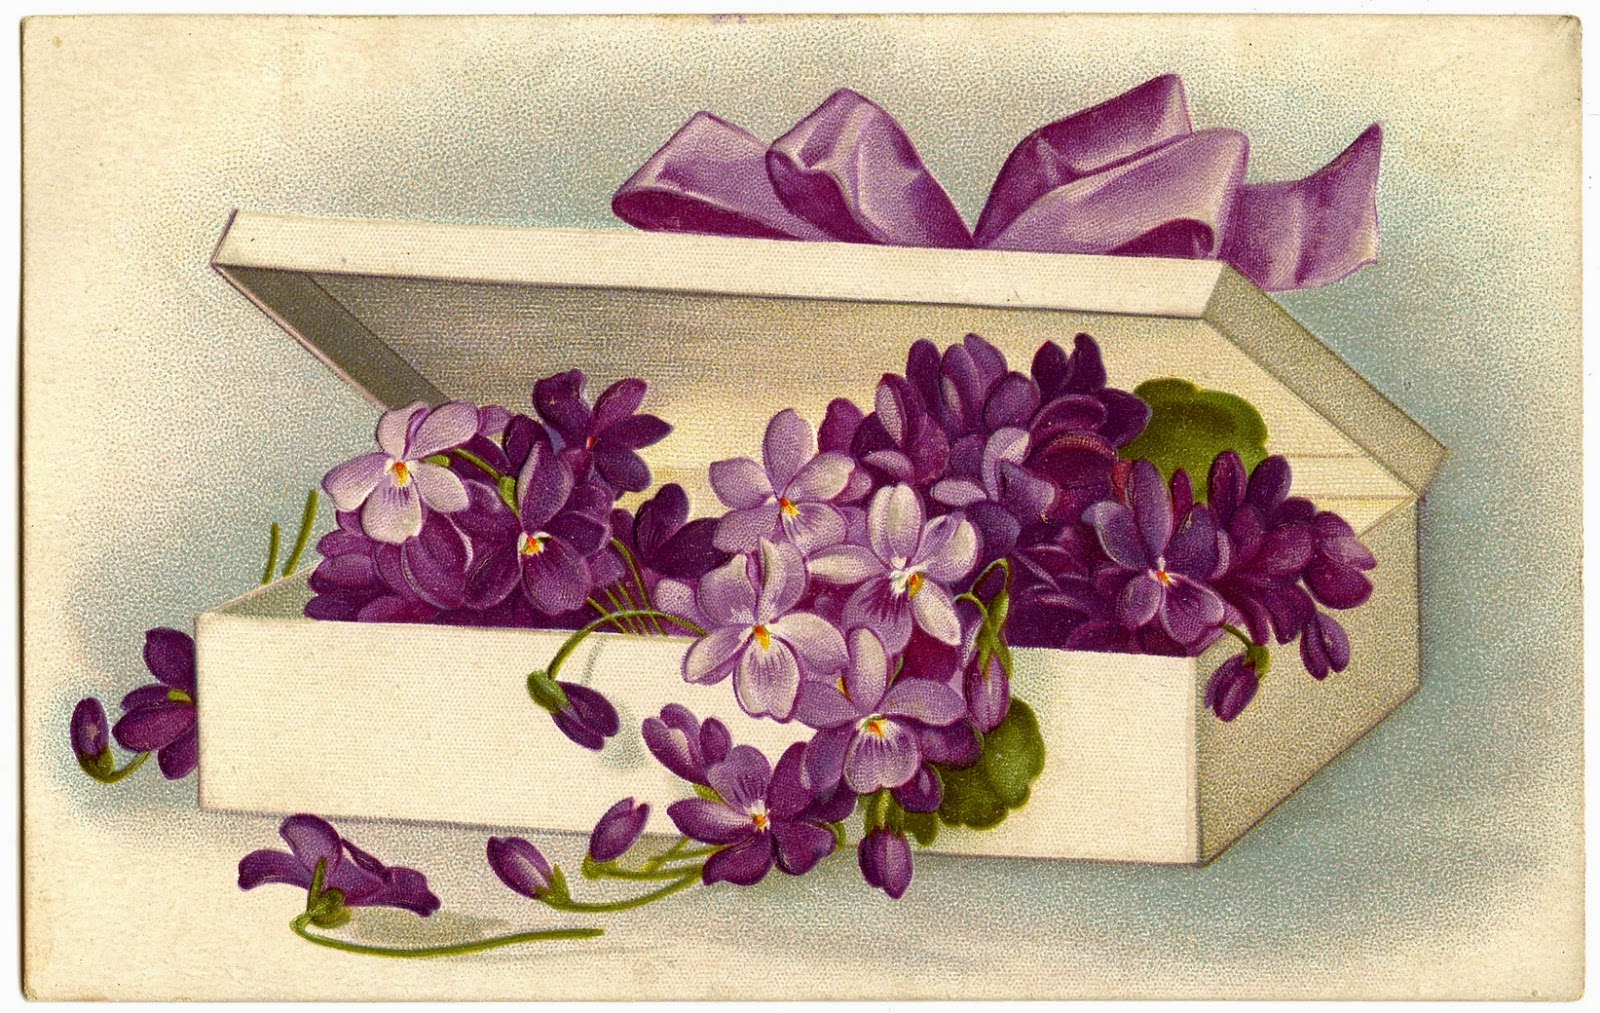 Violets in a fancy box